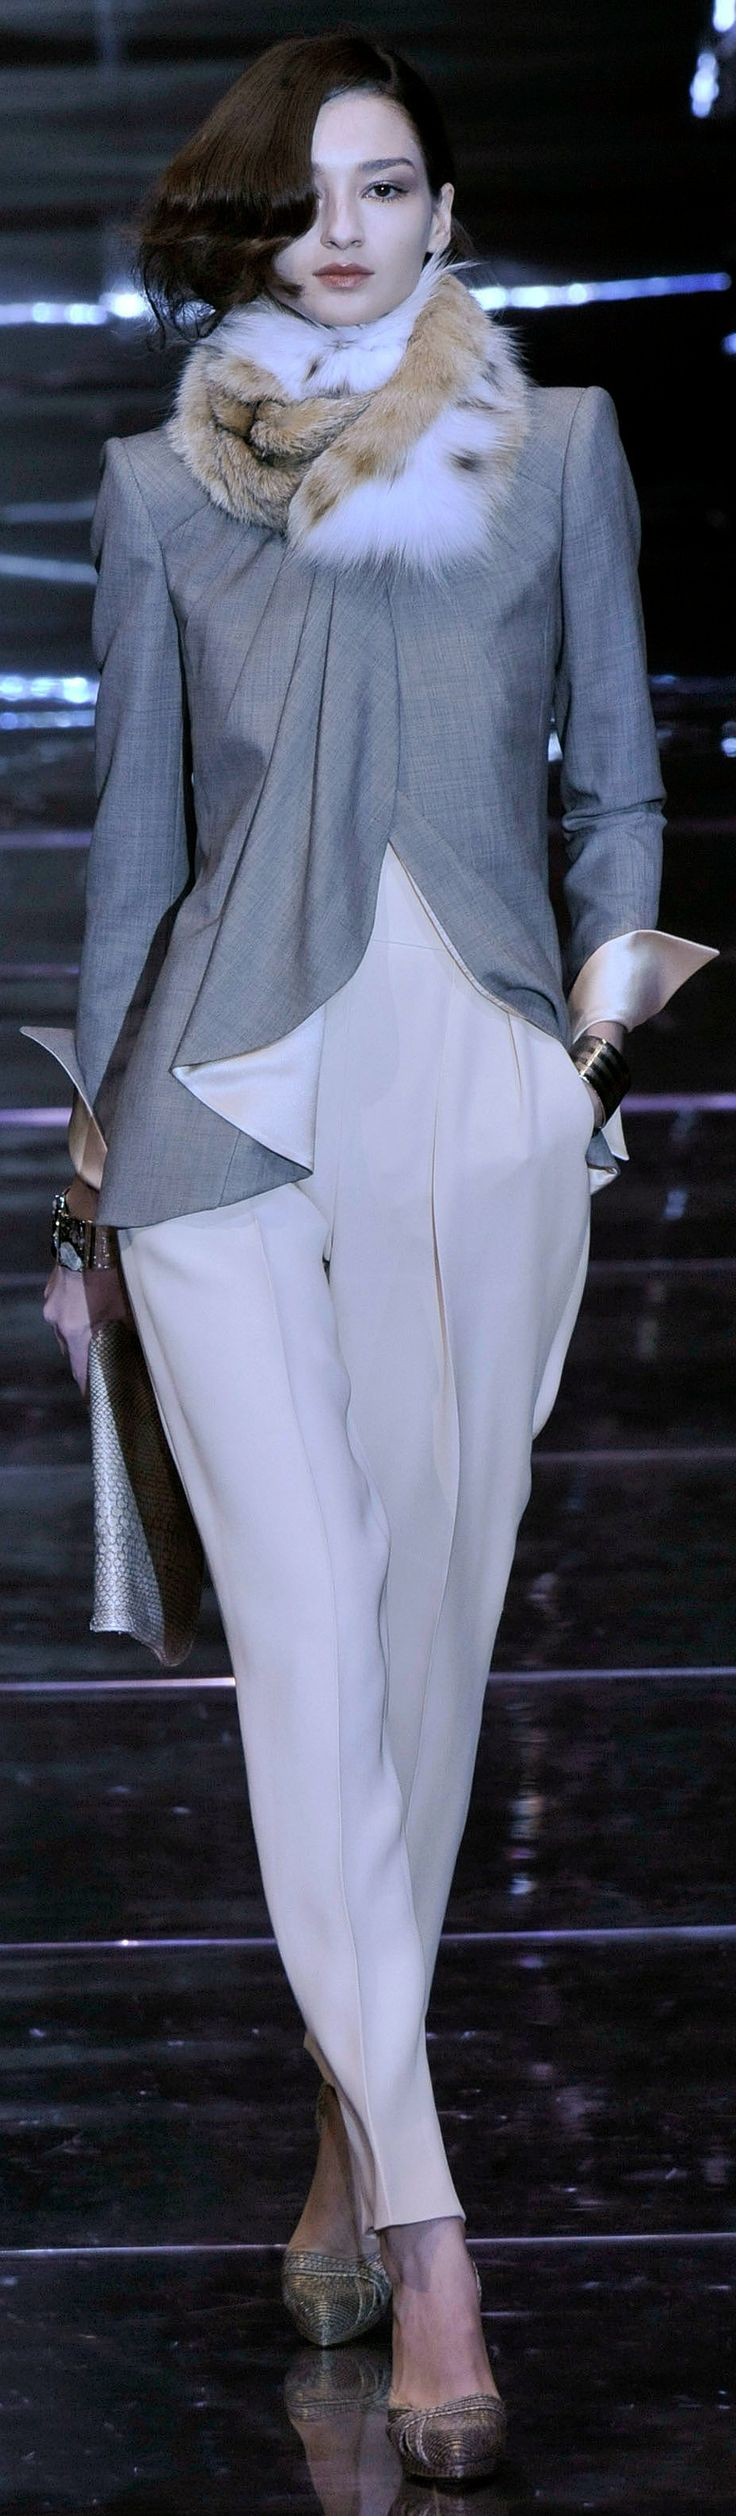 Armani Privé Haute Couture Fall Winter 2008/2009 collection